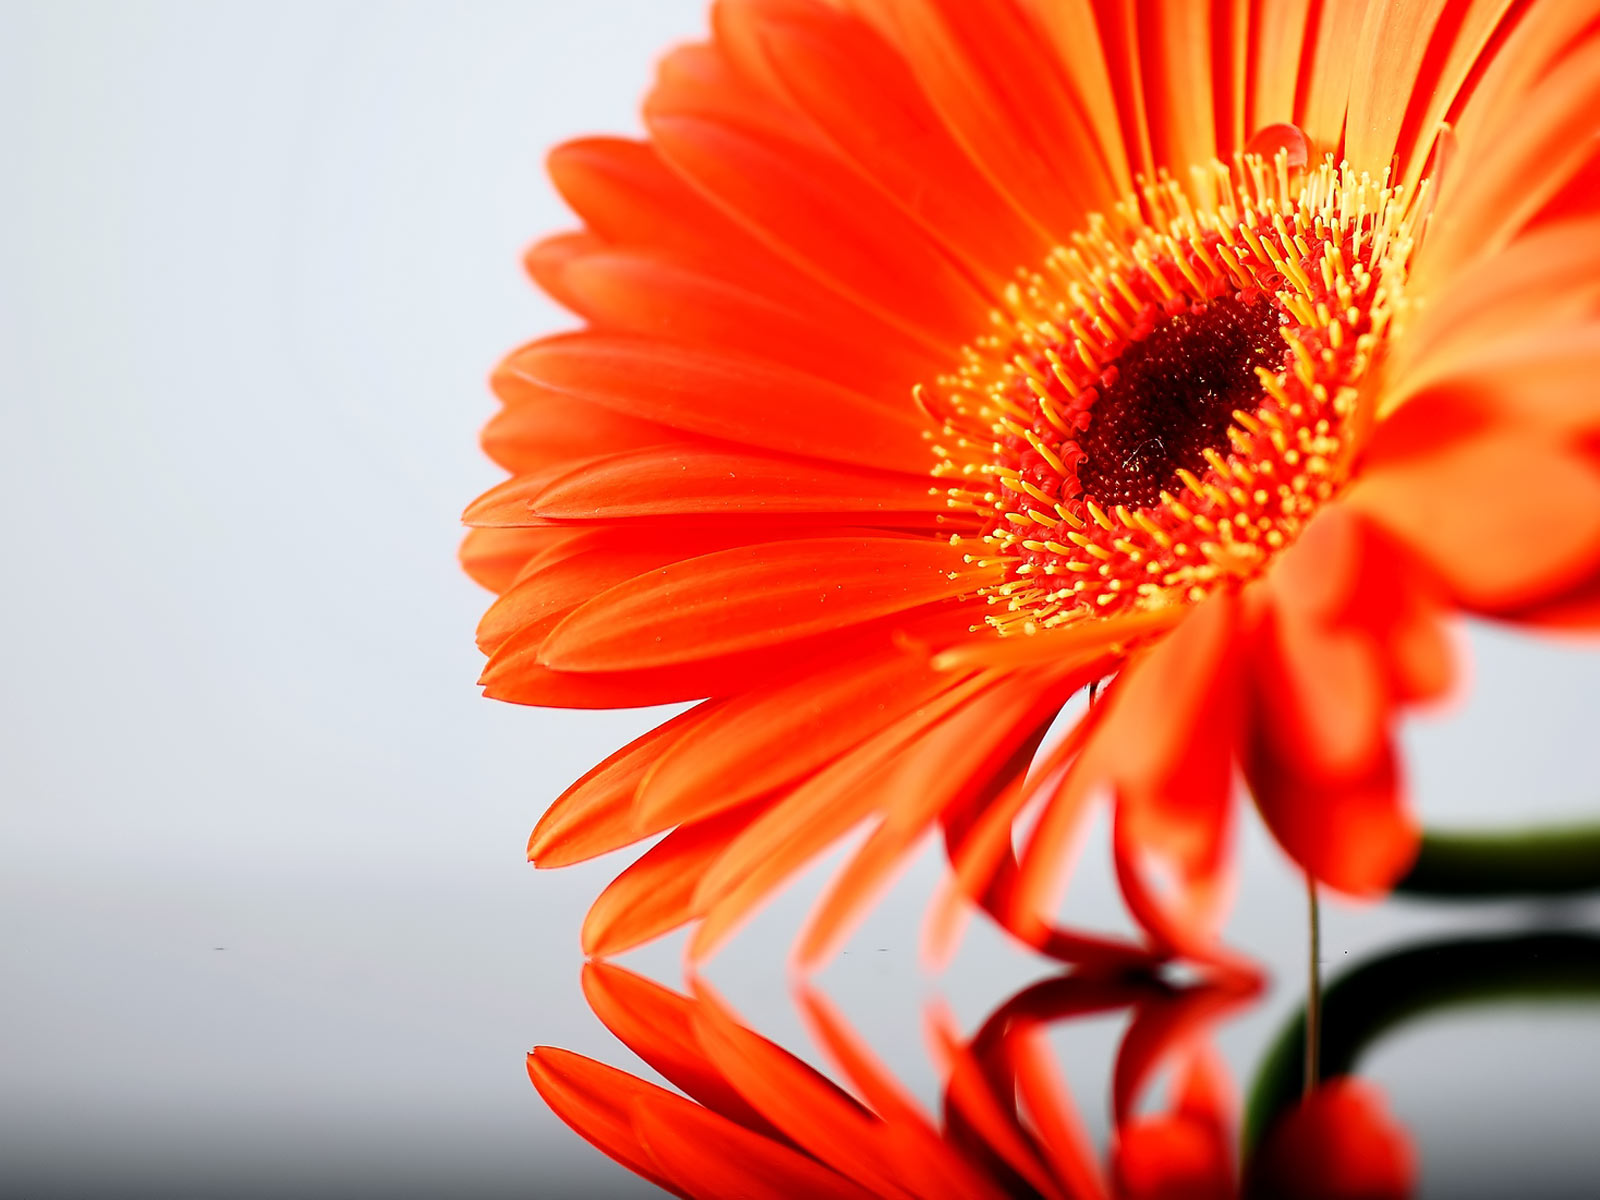 Orange flowers wallpaper orange flowers wallpaper orange flowers